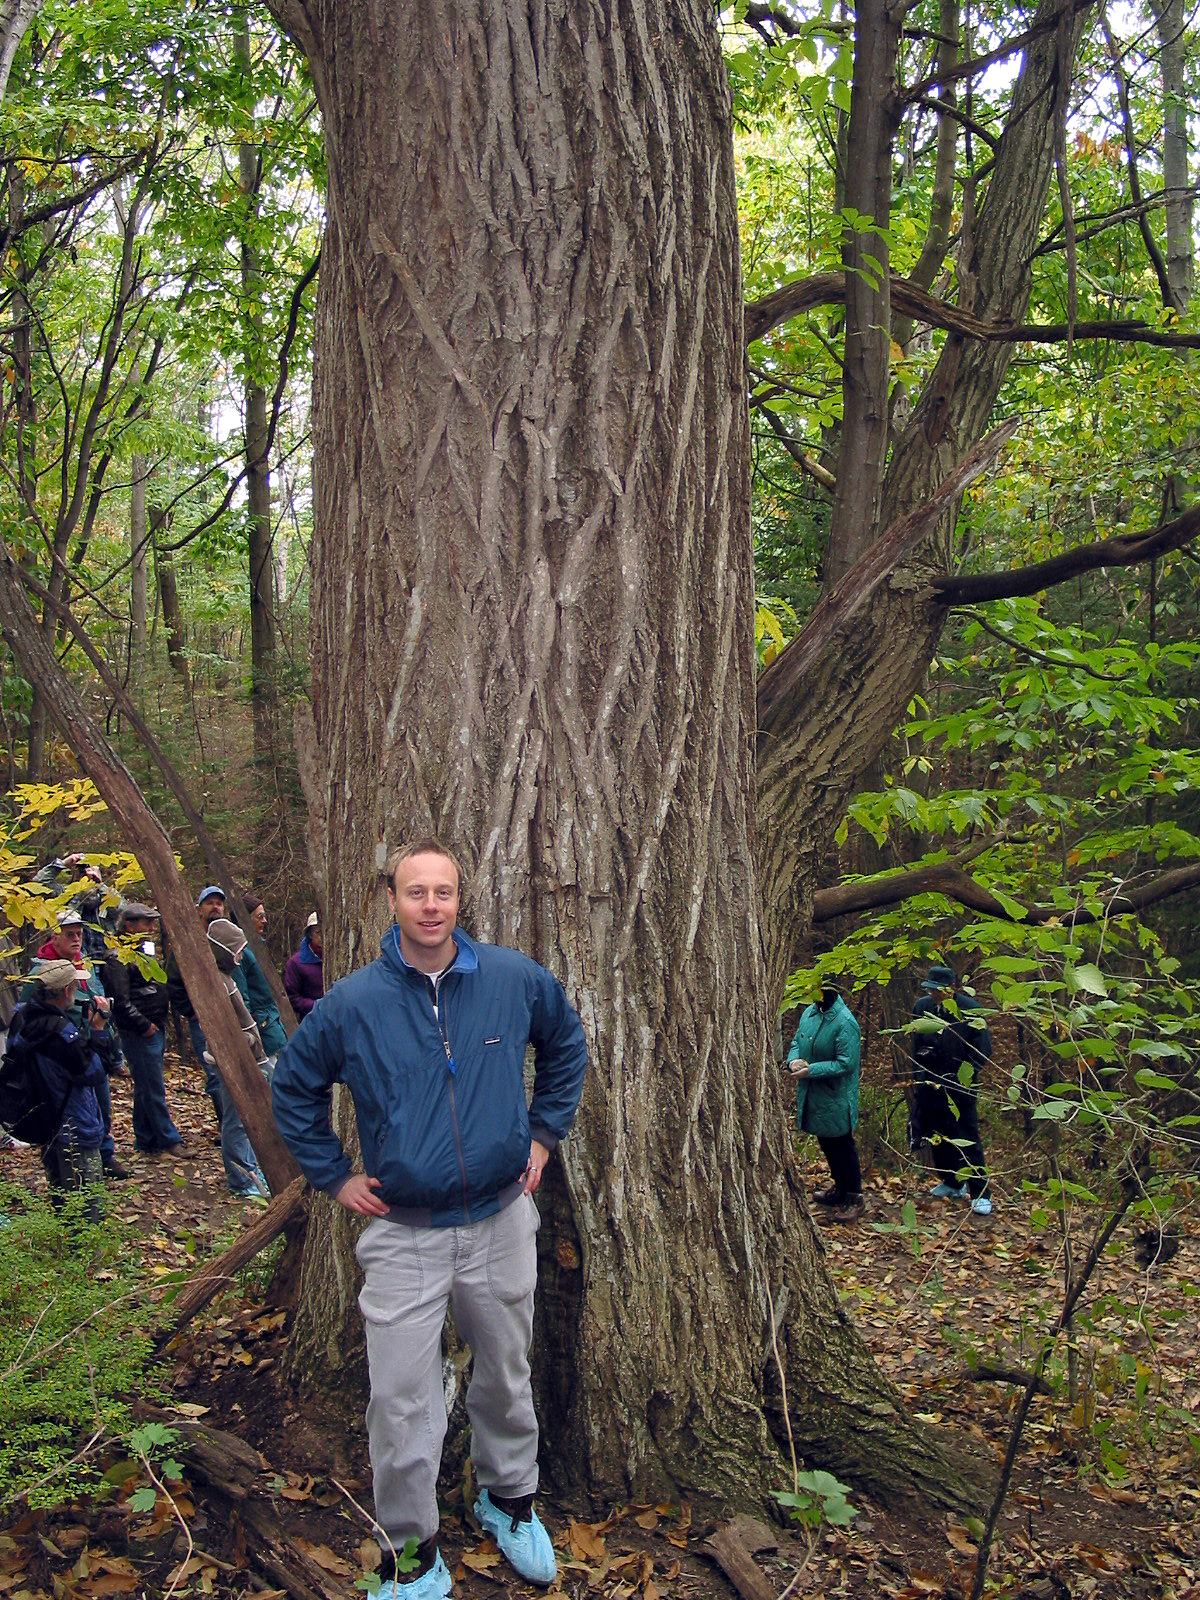 Chestnut Trees To Spread Across Landscape Again Says